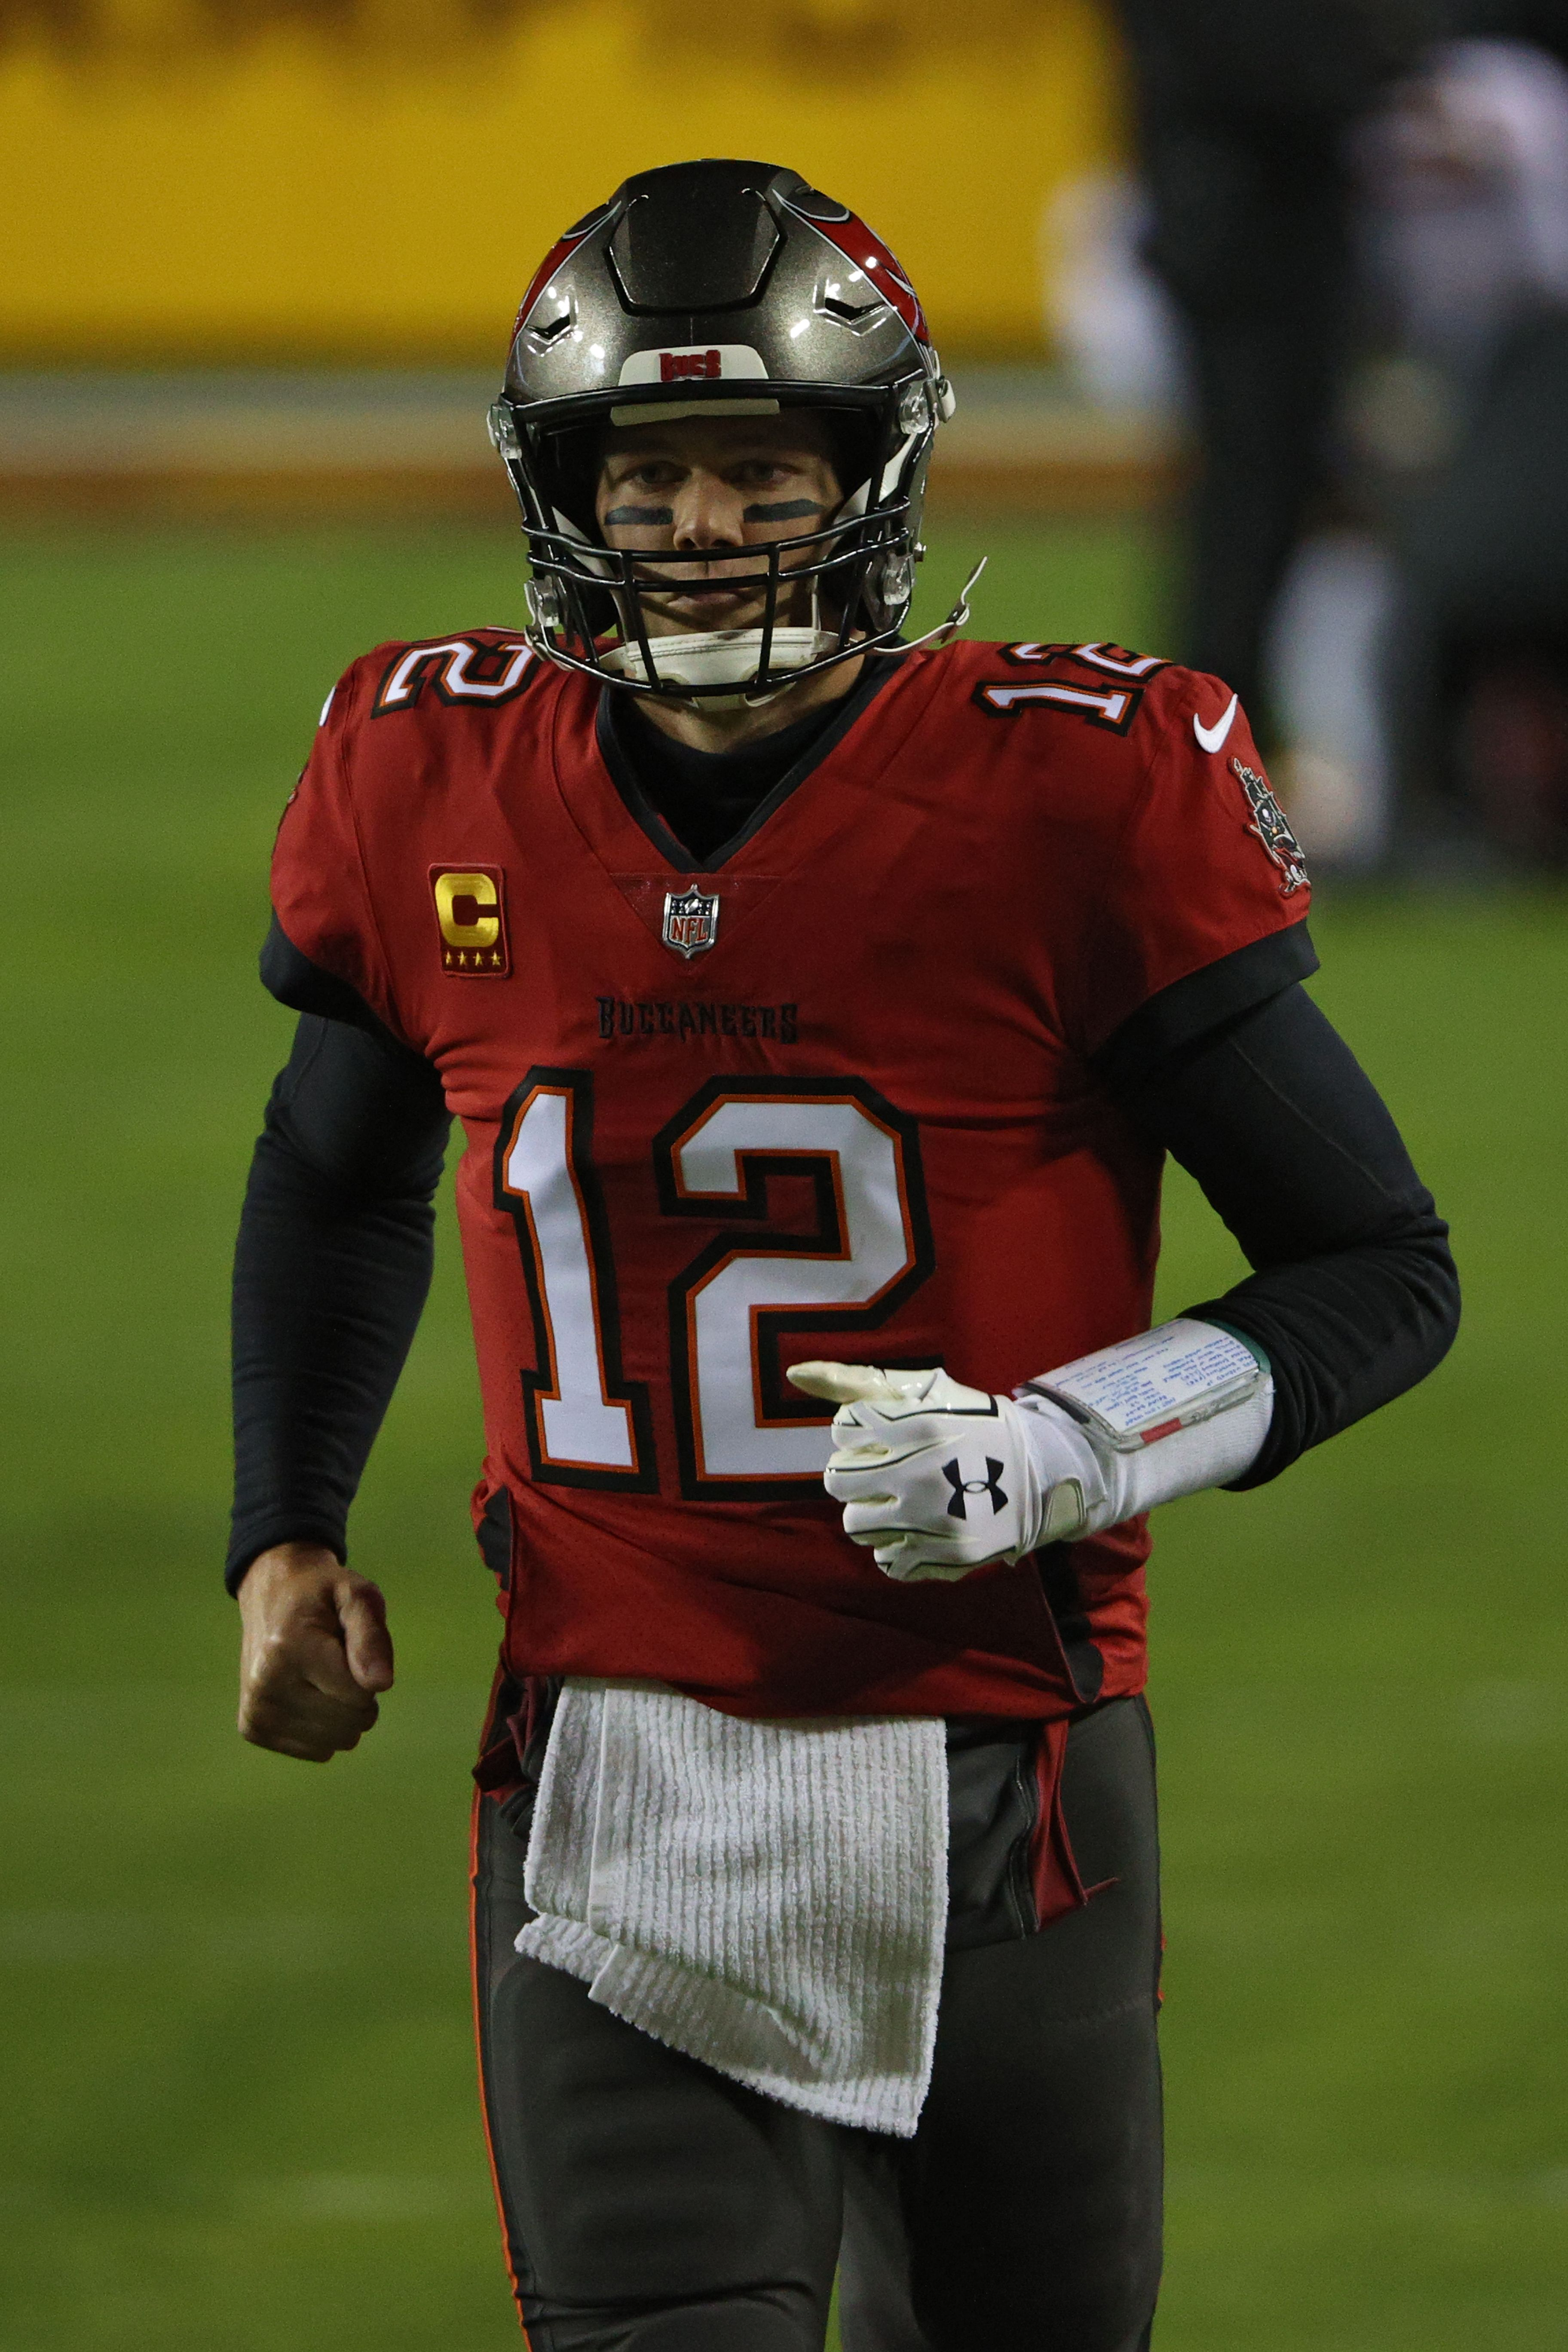 Tom Brady on the field representing his team Tampa Bay Buccaneers. Source | Photo: Getty Images